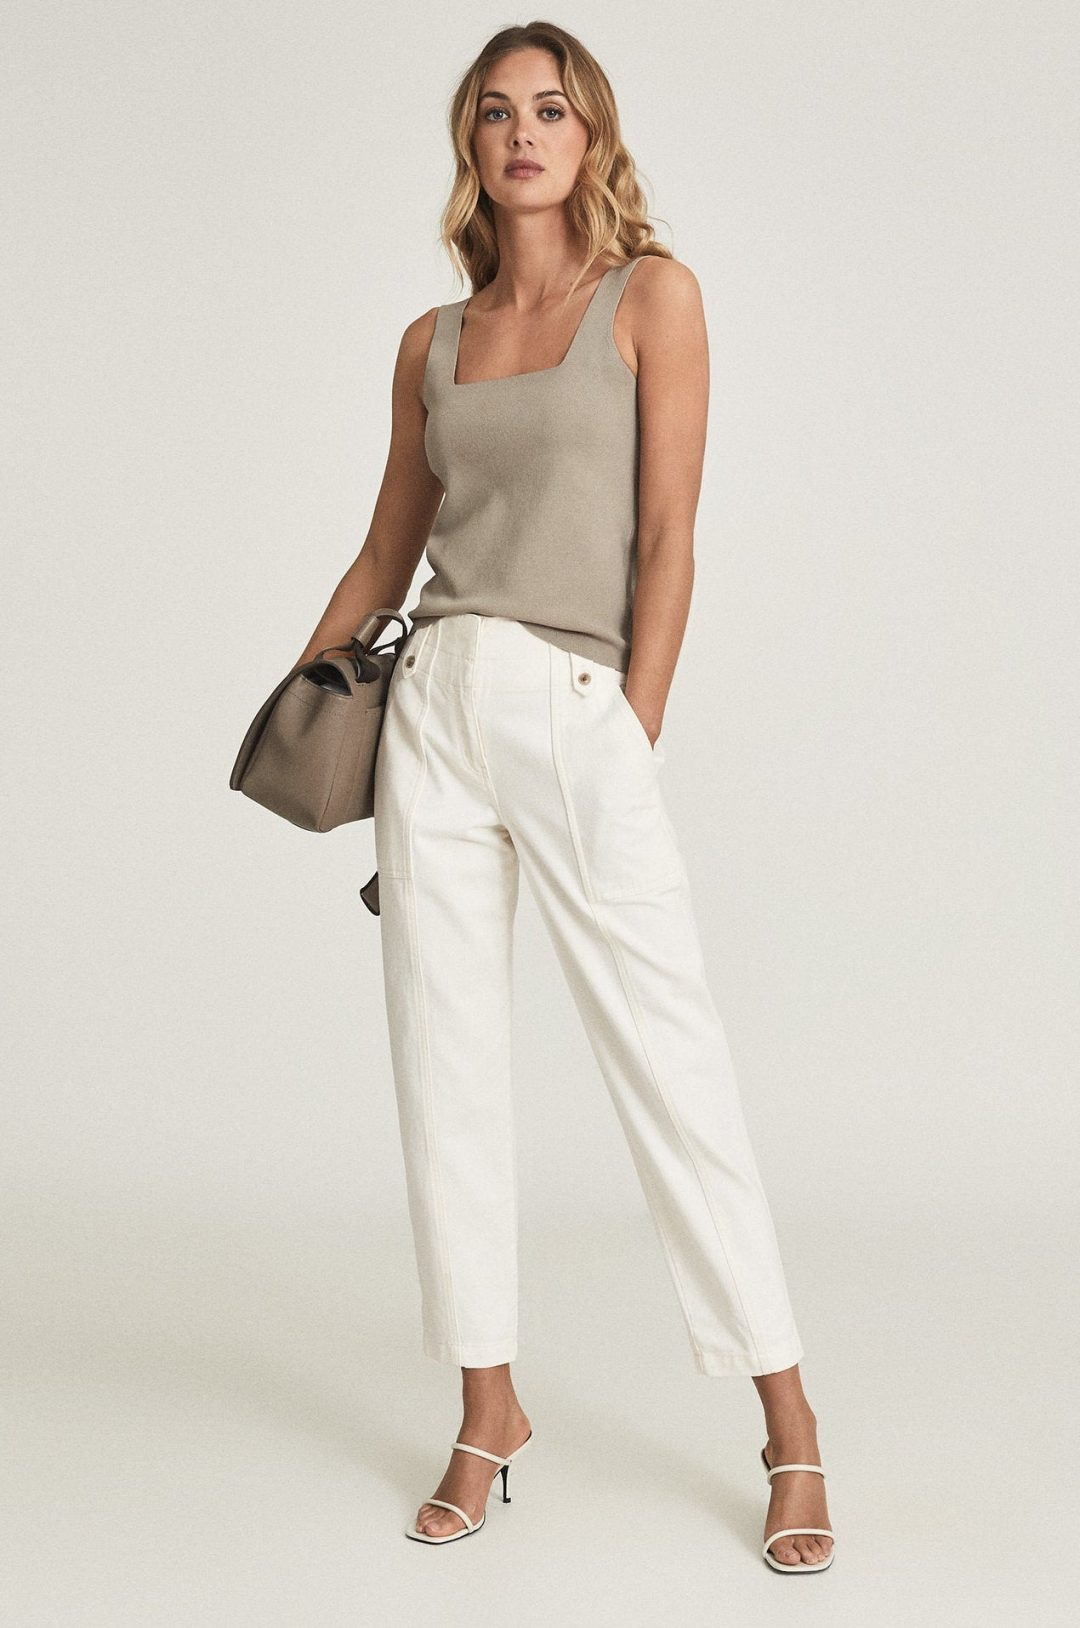 Smart casual clothing from Reiss